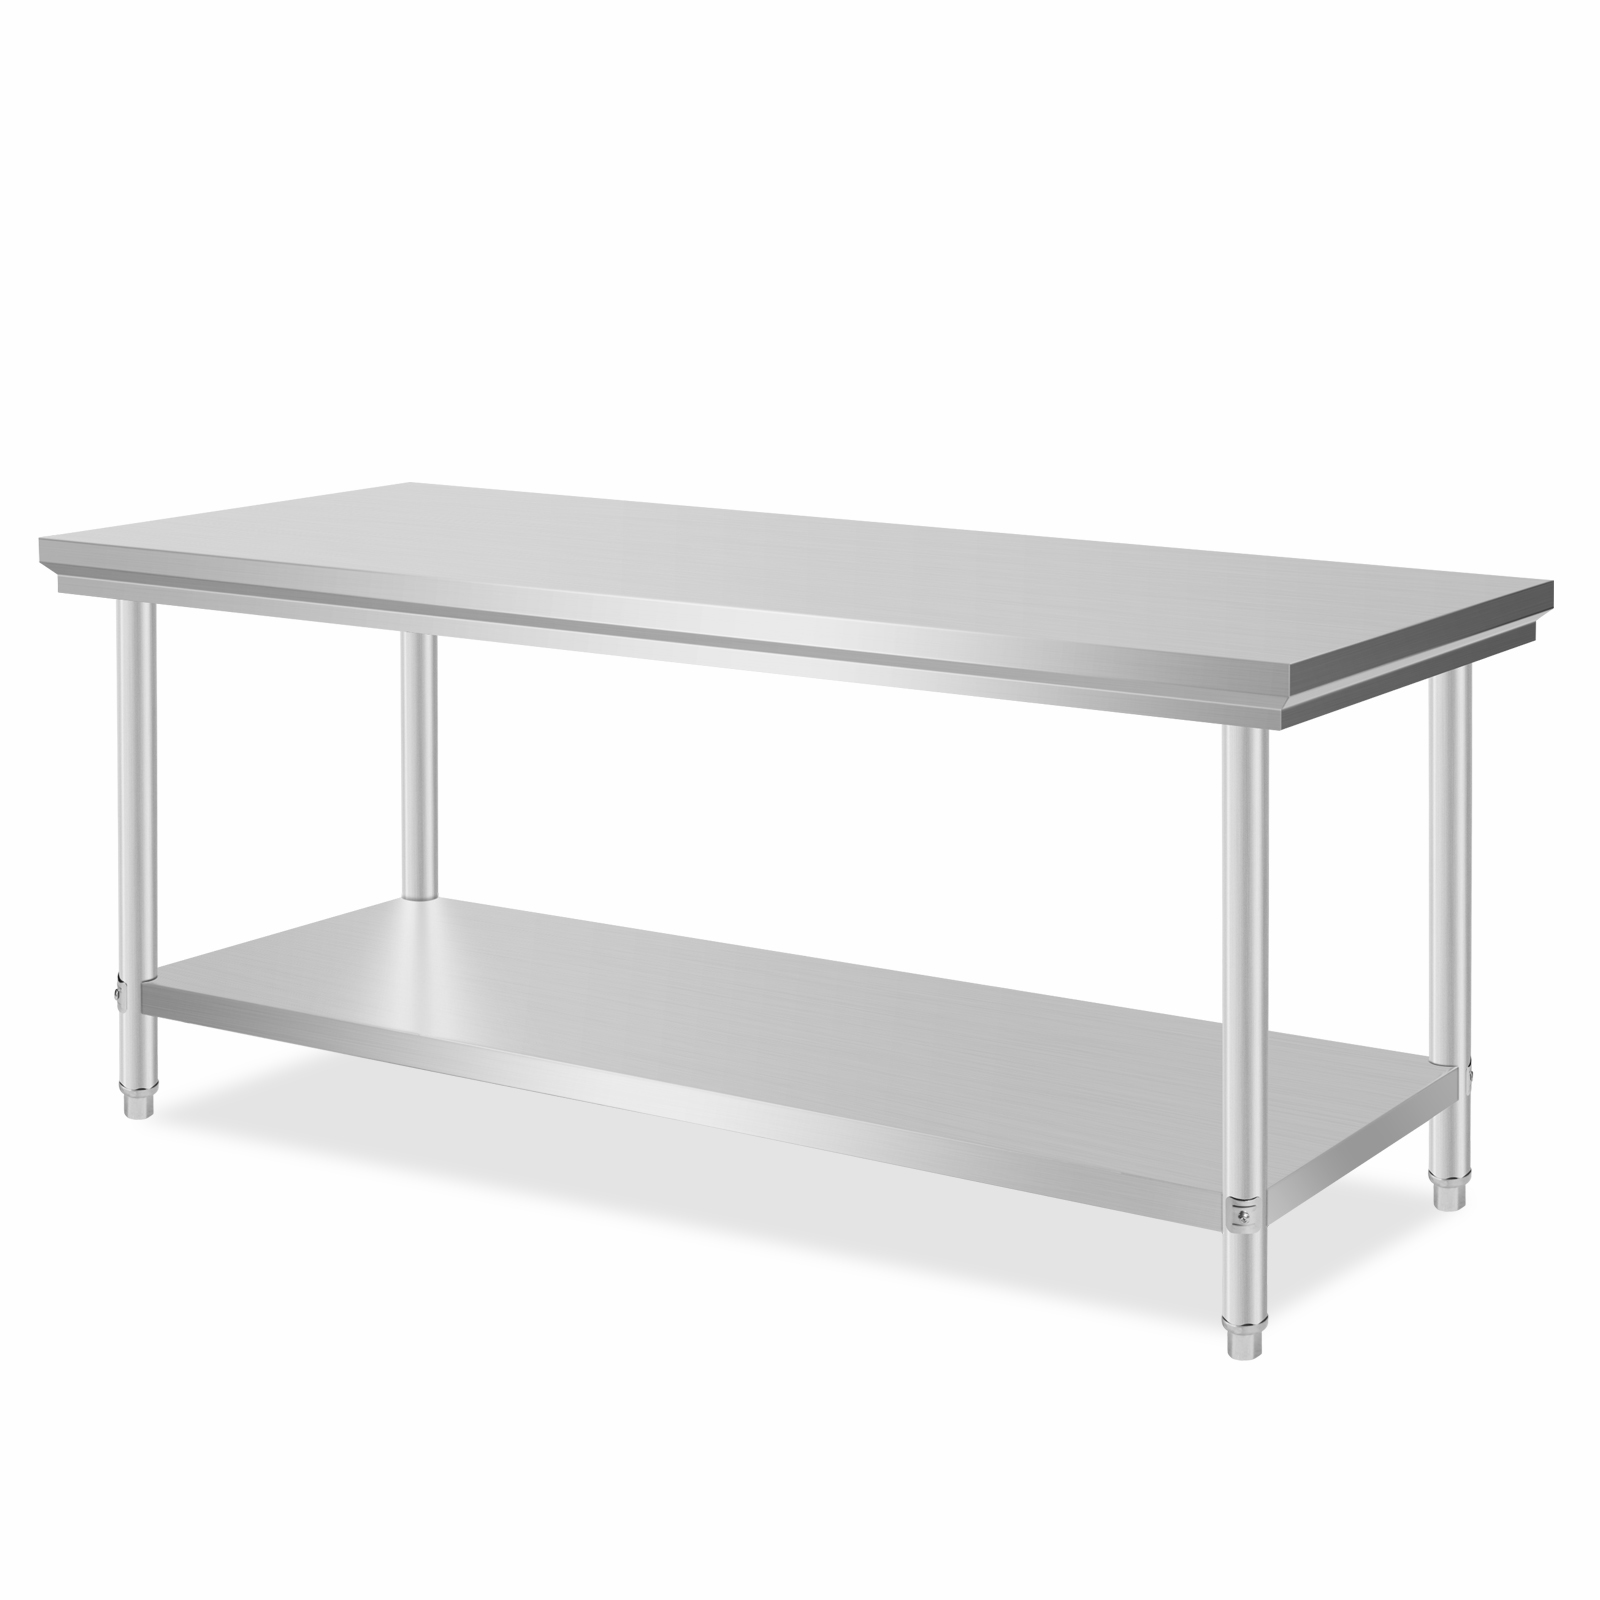 New 201 Stainless Steel Kitchen Work Bench Food Prep Table Top 762x1829mm Ebay